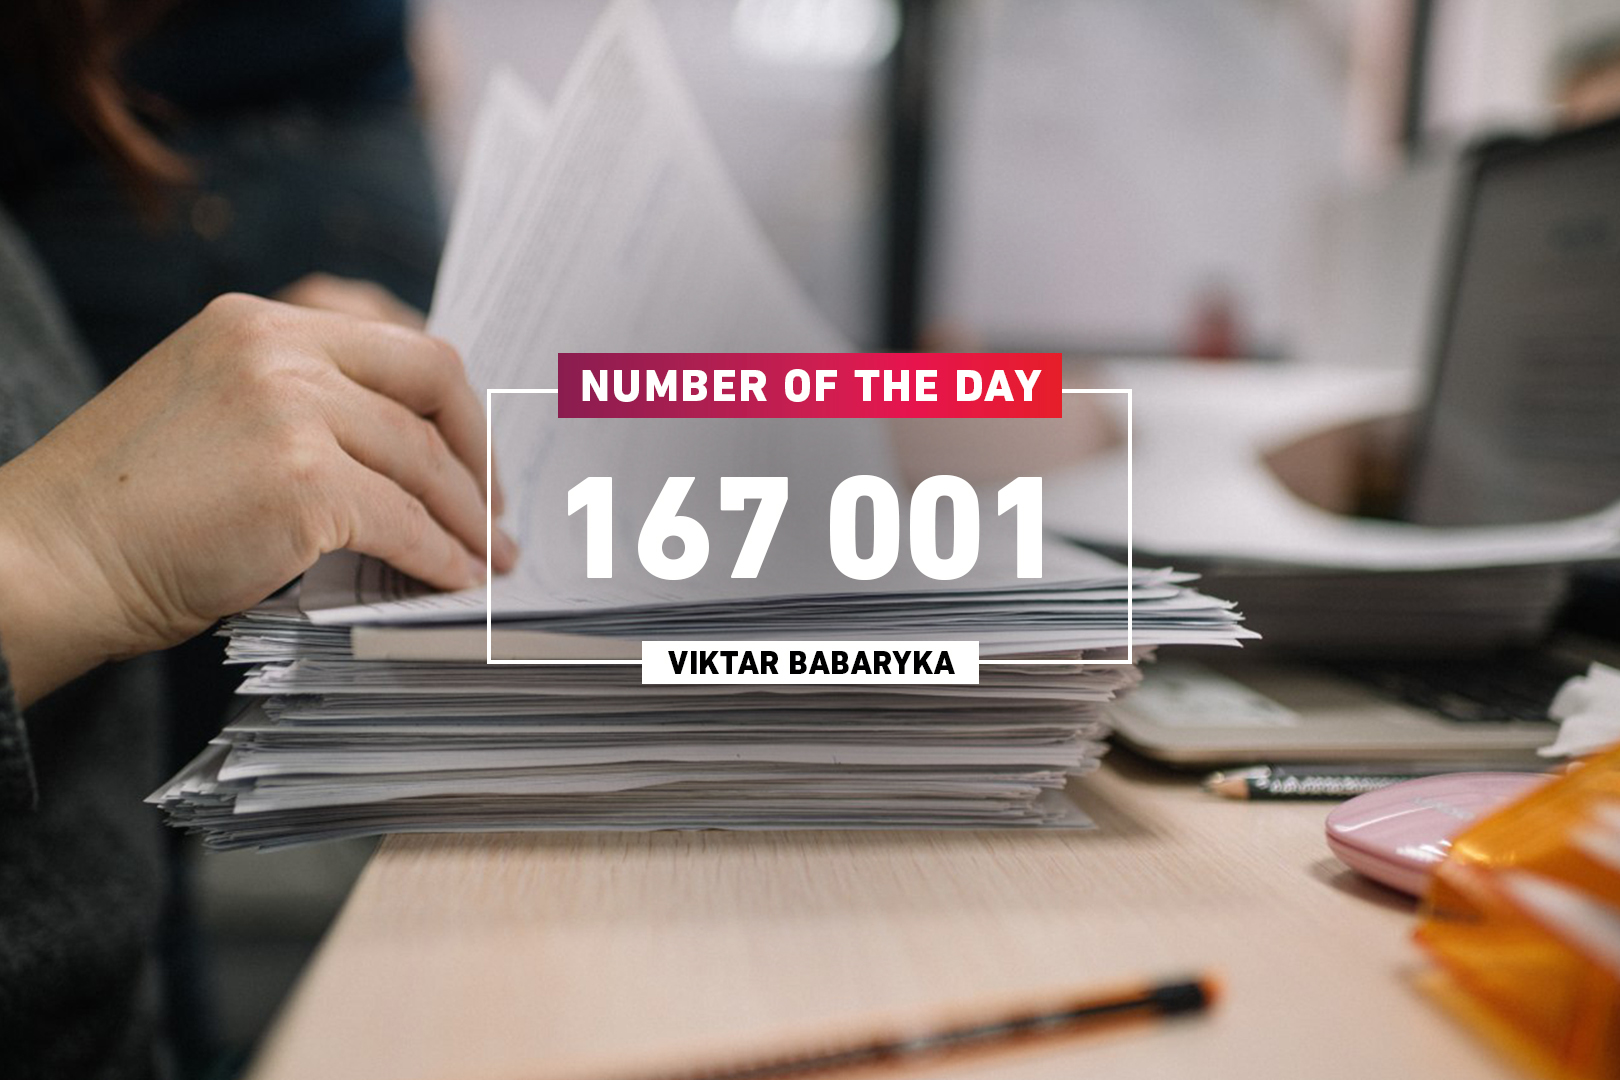 Number of the day: 167 001 signatures